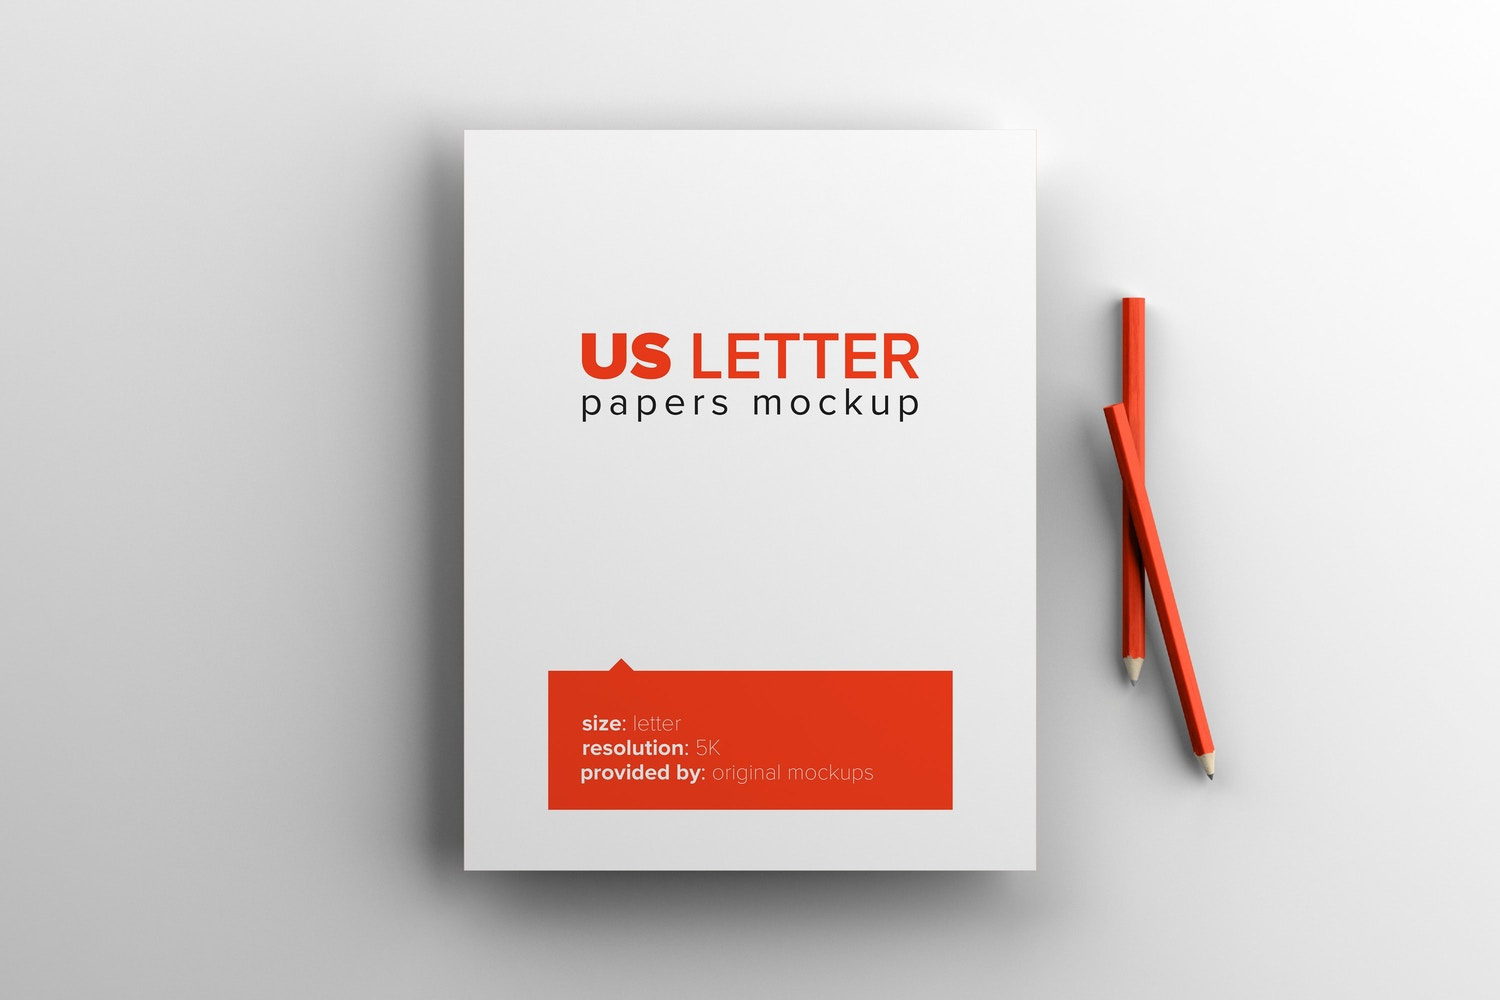 US Letter Paper Mockup by Original Mockups on Original Mockups